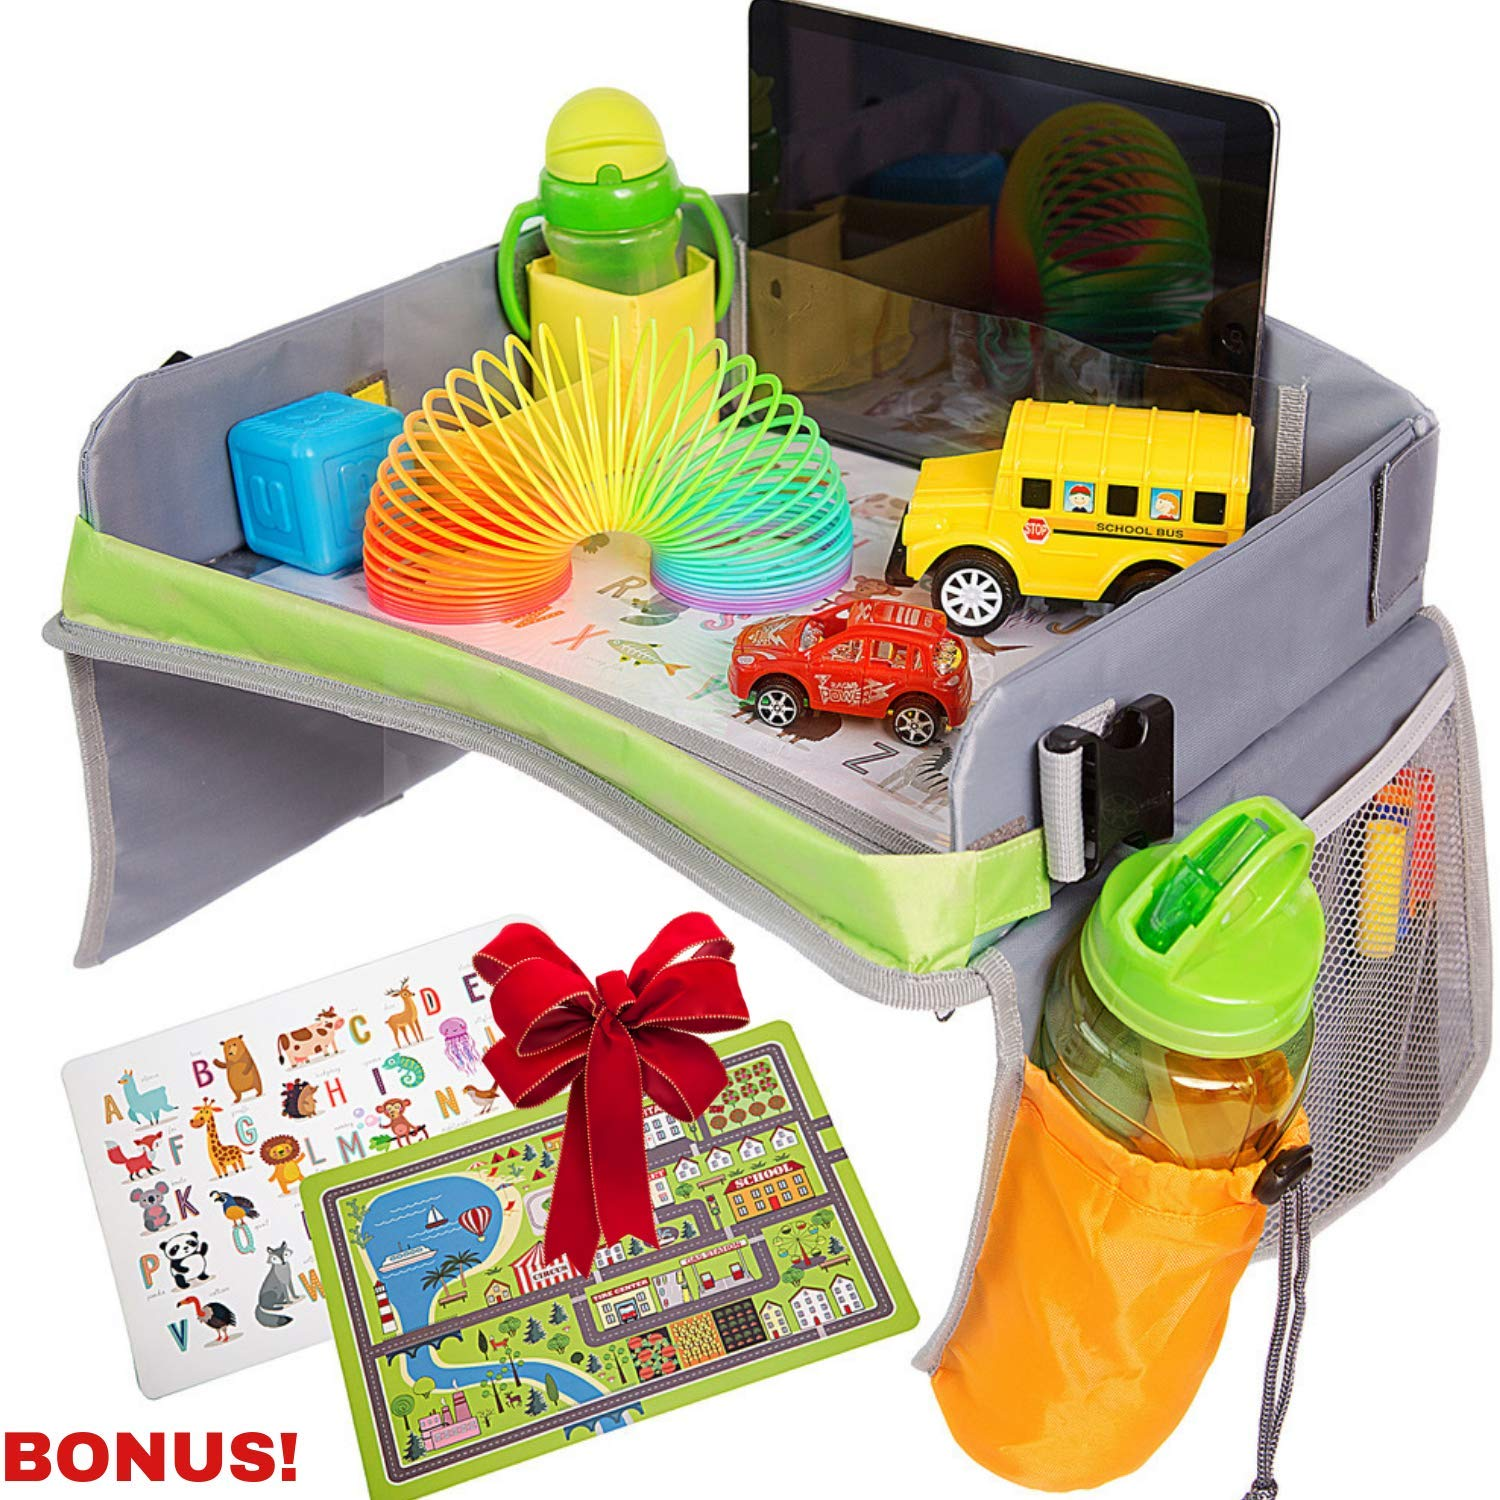 Bulabee Kids Travel Tray for Car Seat, Perfect Toddler Activity Play Organizer for Toys & Games, Holds iPad or Tablet, Snack Tray, Dry Erase Top, Sturdy, Waterproof, Portable, Road Trip Essential by Bulabee Kids